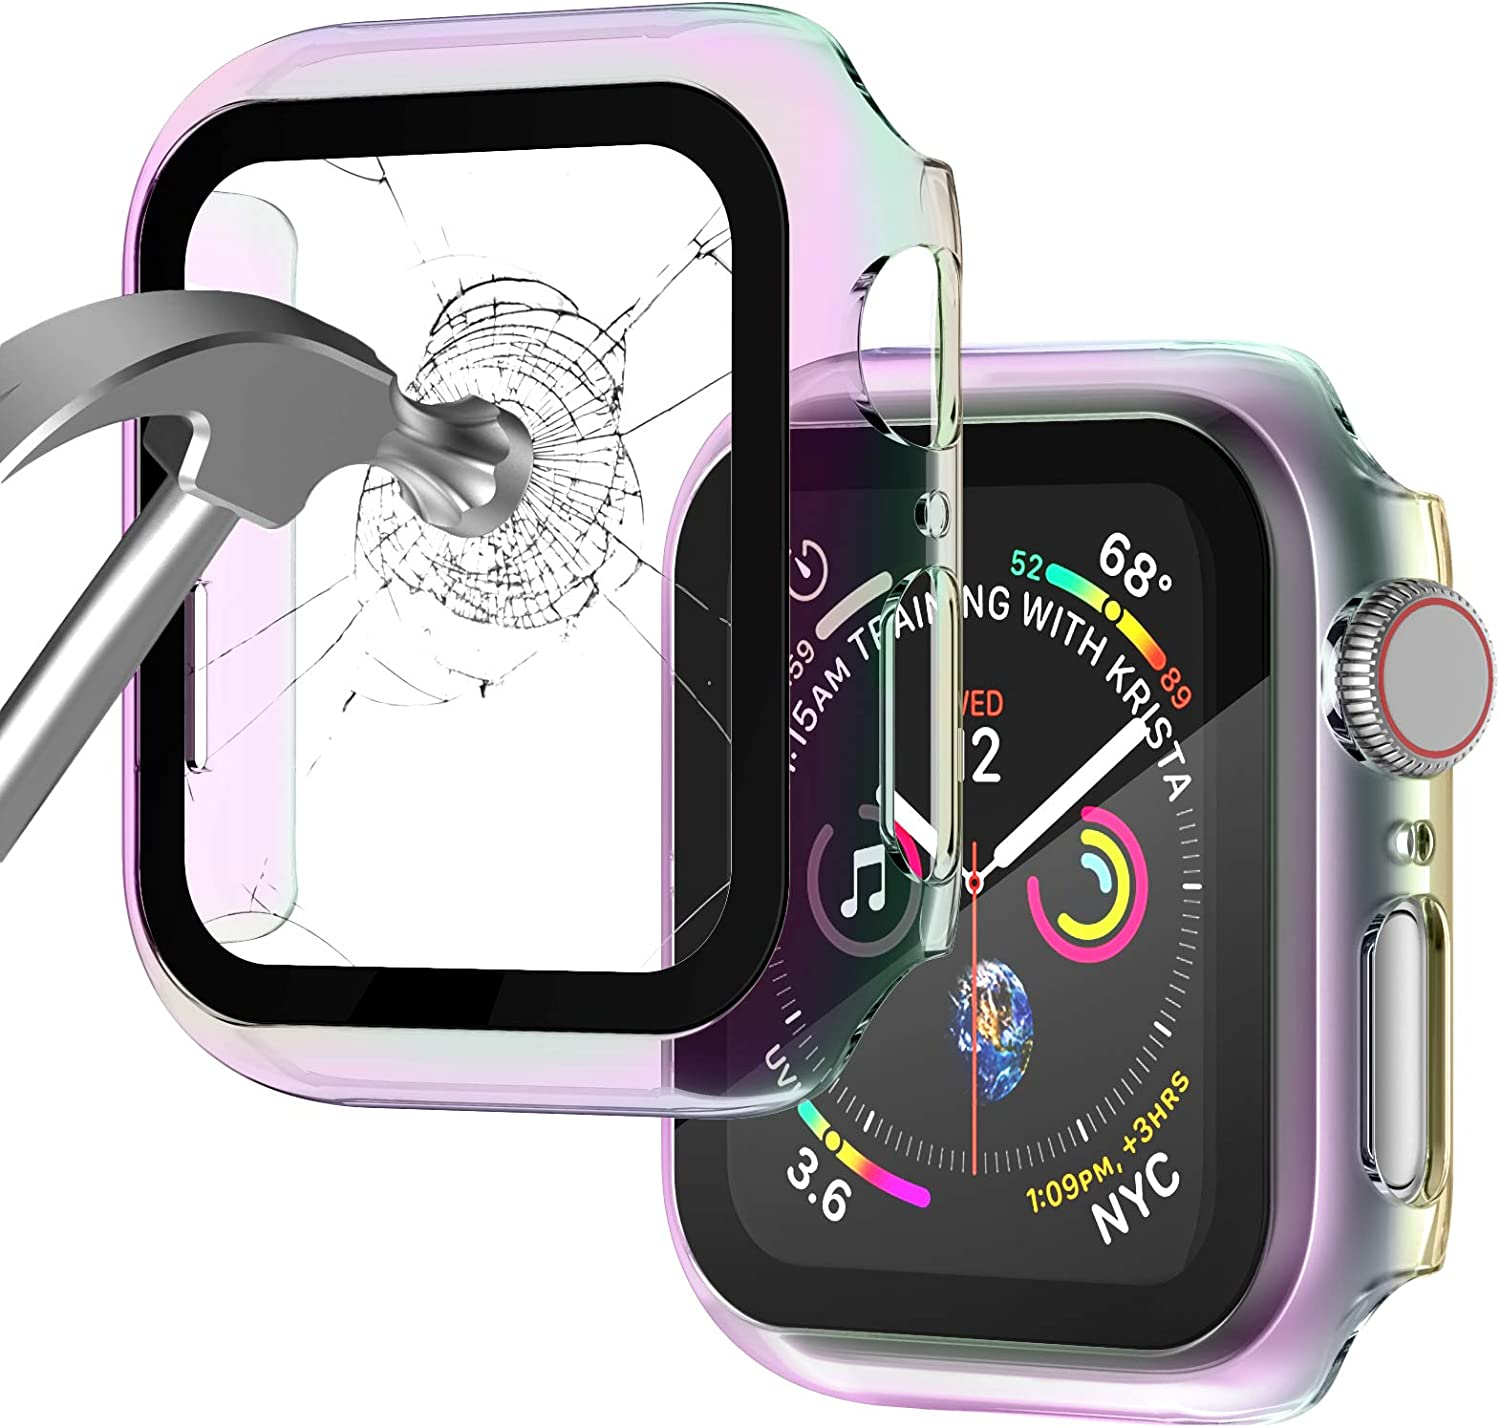 Apple Watch Case for Apple Watch 42MM Series 3/2/1/ with Built-in Tempered Glass Screen Protector, All-Around Ultra-Thin Bumper Full Cover Hard PC Protective Case for iWatch